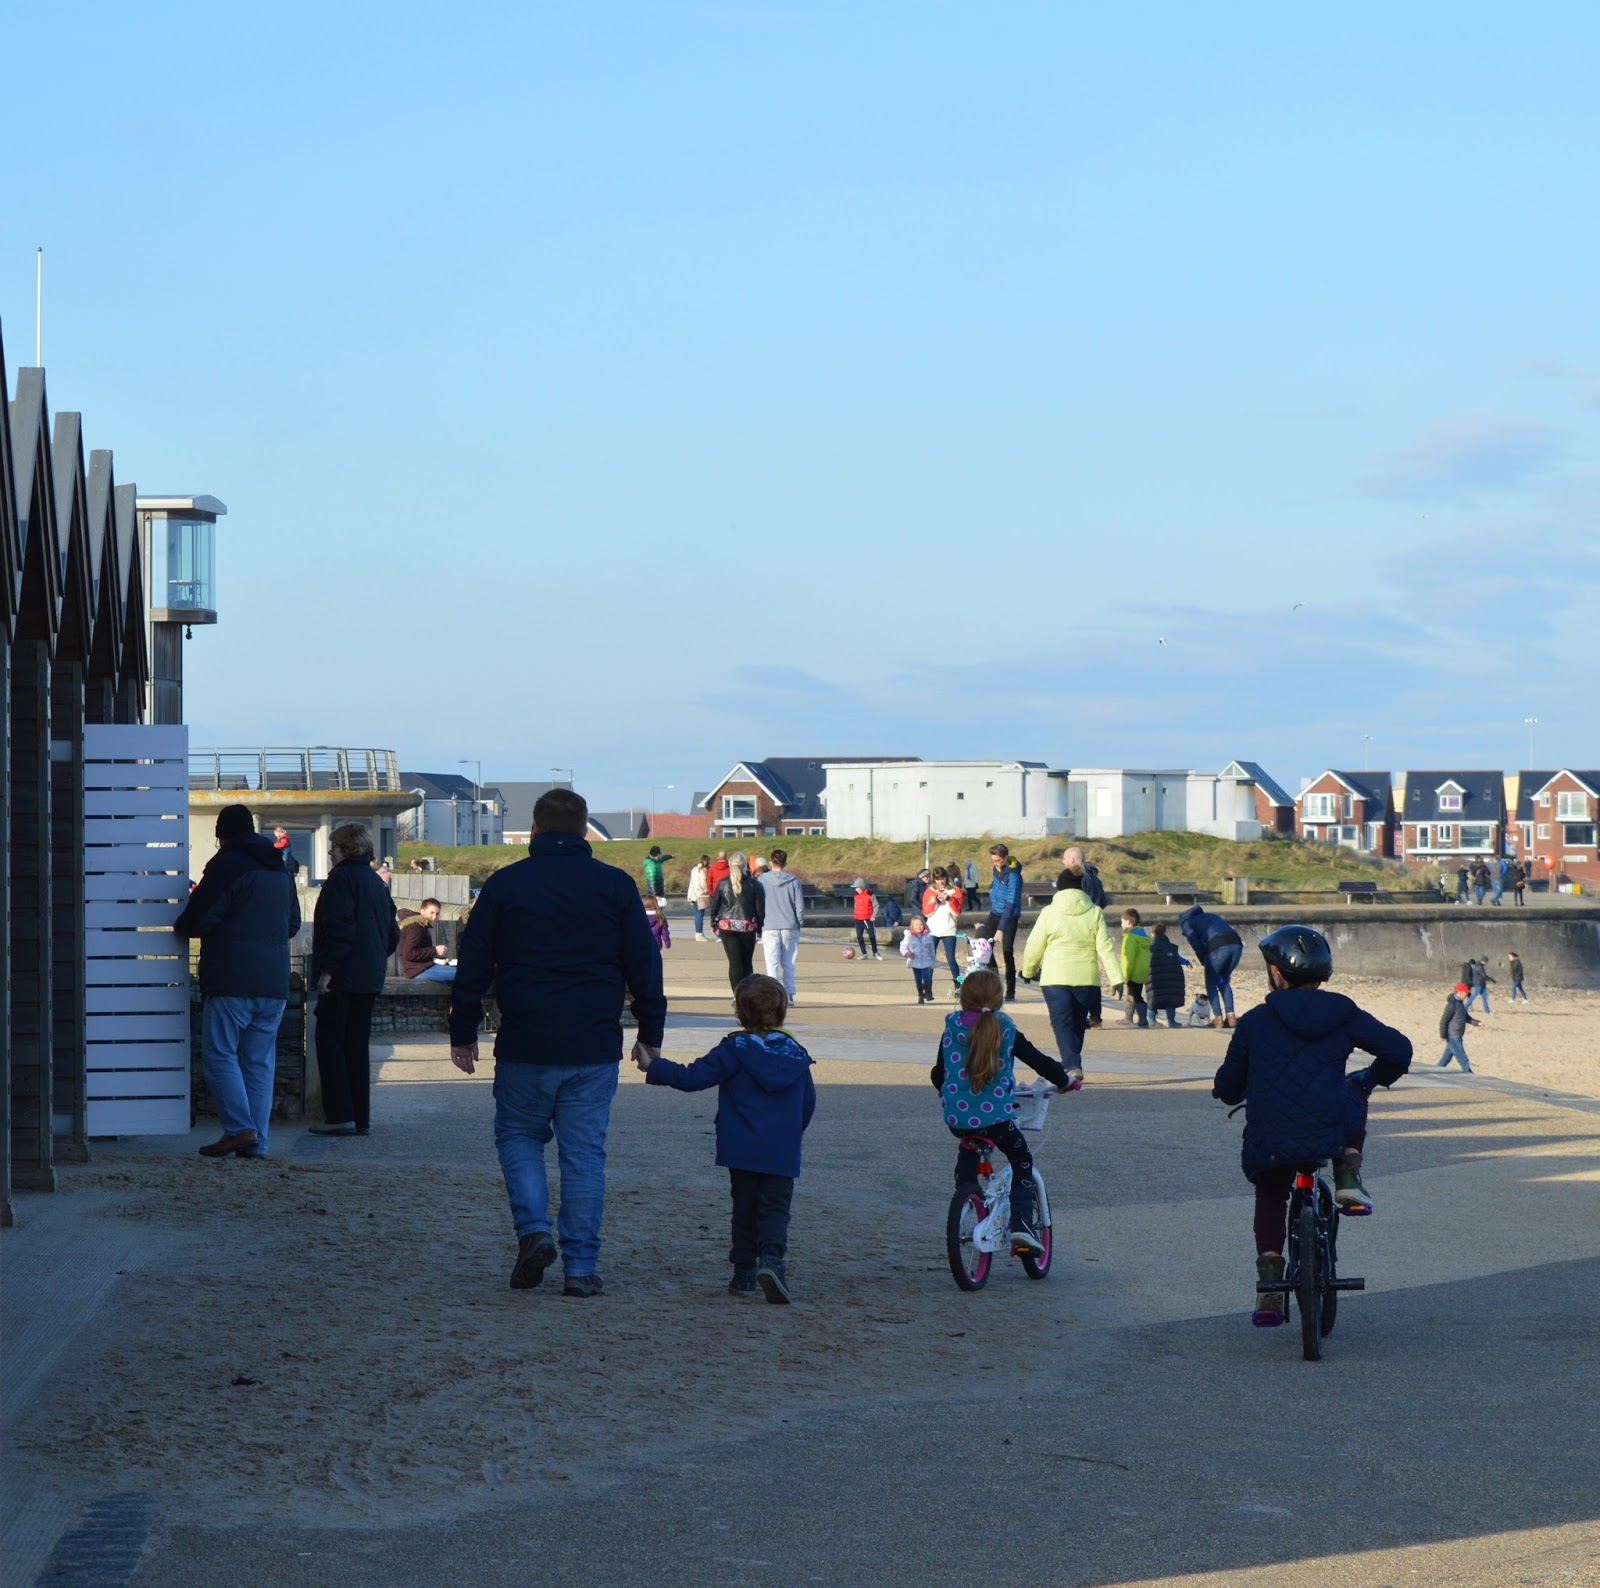 13 of the best pushchair-friendly walks around North East England as recommended by local parents - blyth beach